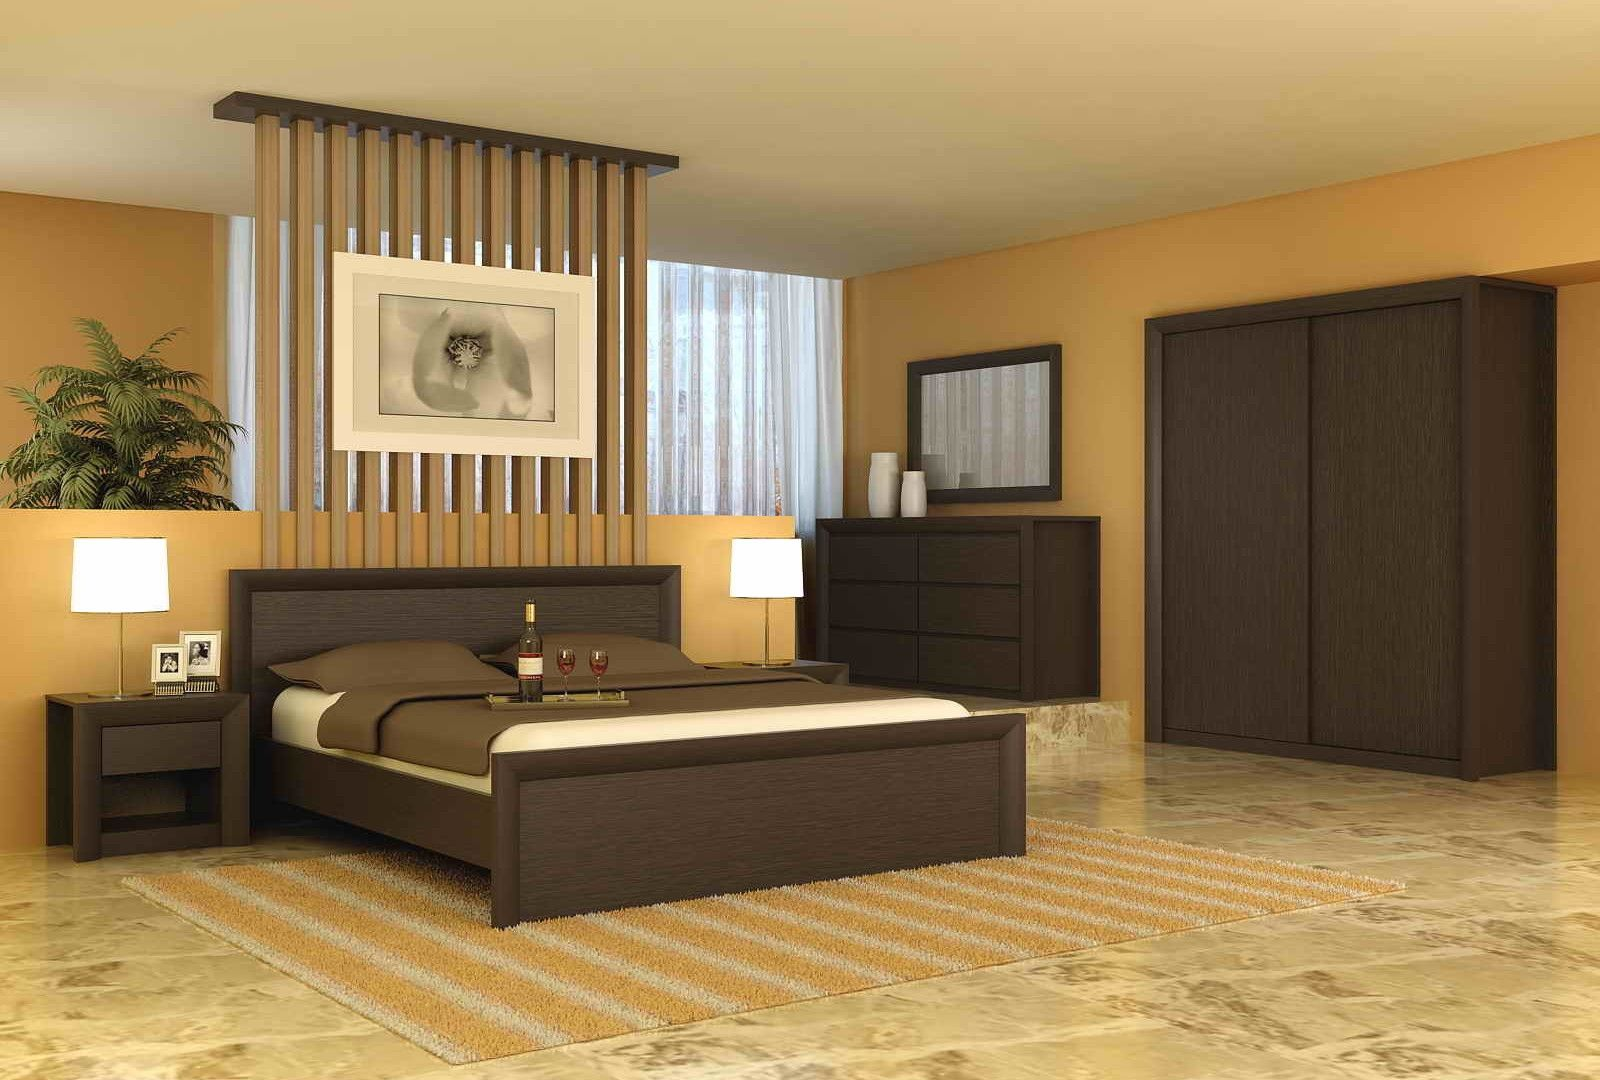 Beautiful Simple Bedroom Color Ideas Part - 3: Simple Bedroom Wall Wardrobe Design Simple Modern Bedroom Decorating Ideas  With Calm Wall Color Shades And